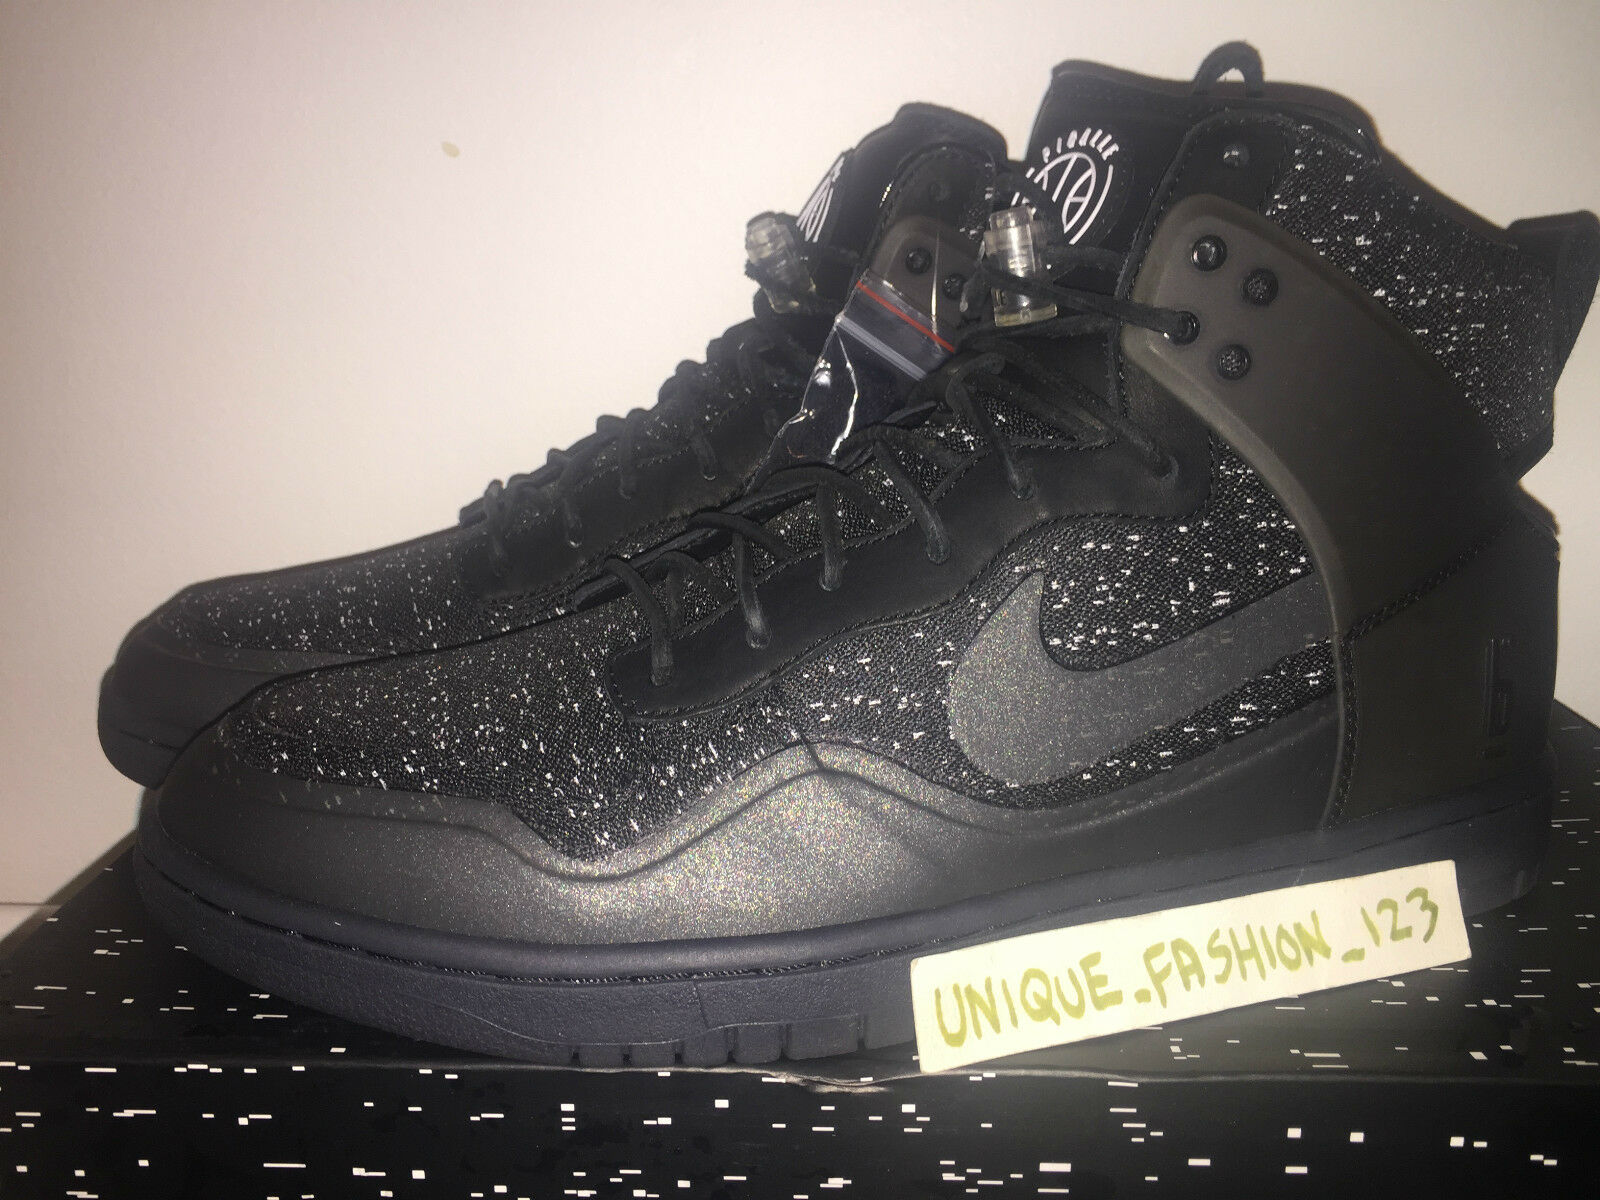 NIKE DUNK LUX HIGH PIGALLE PARIS PPP US 11 SP HI BLACK HYPERFUSE Special limited time